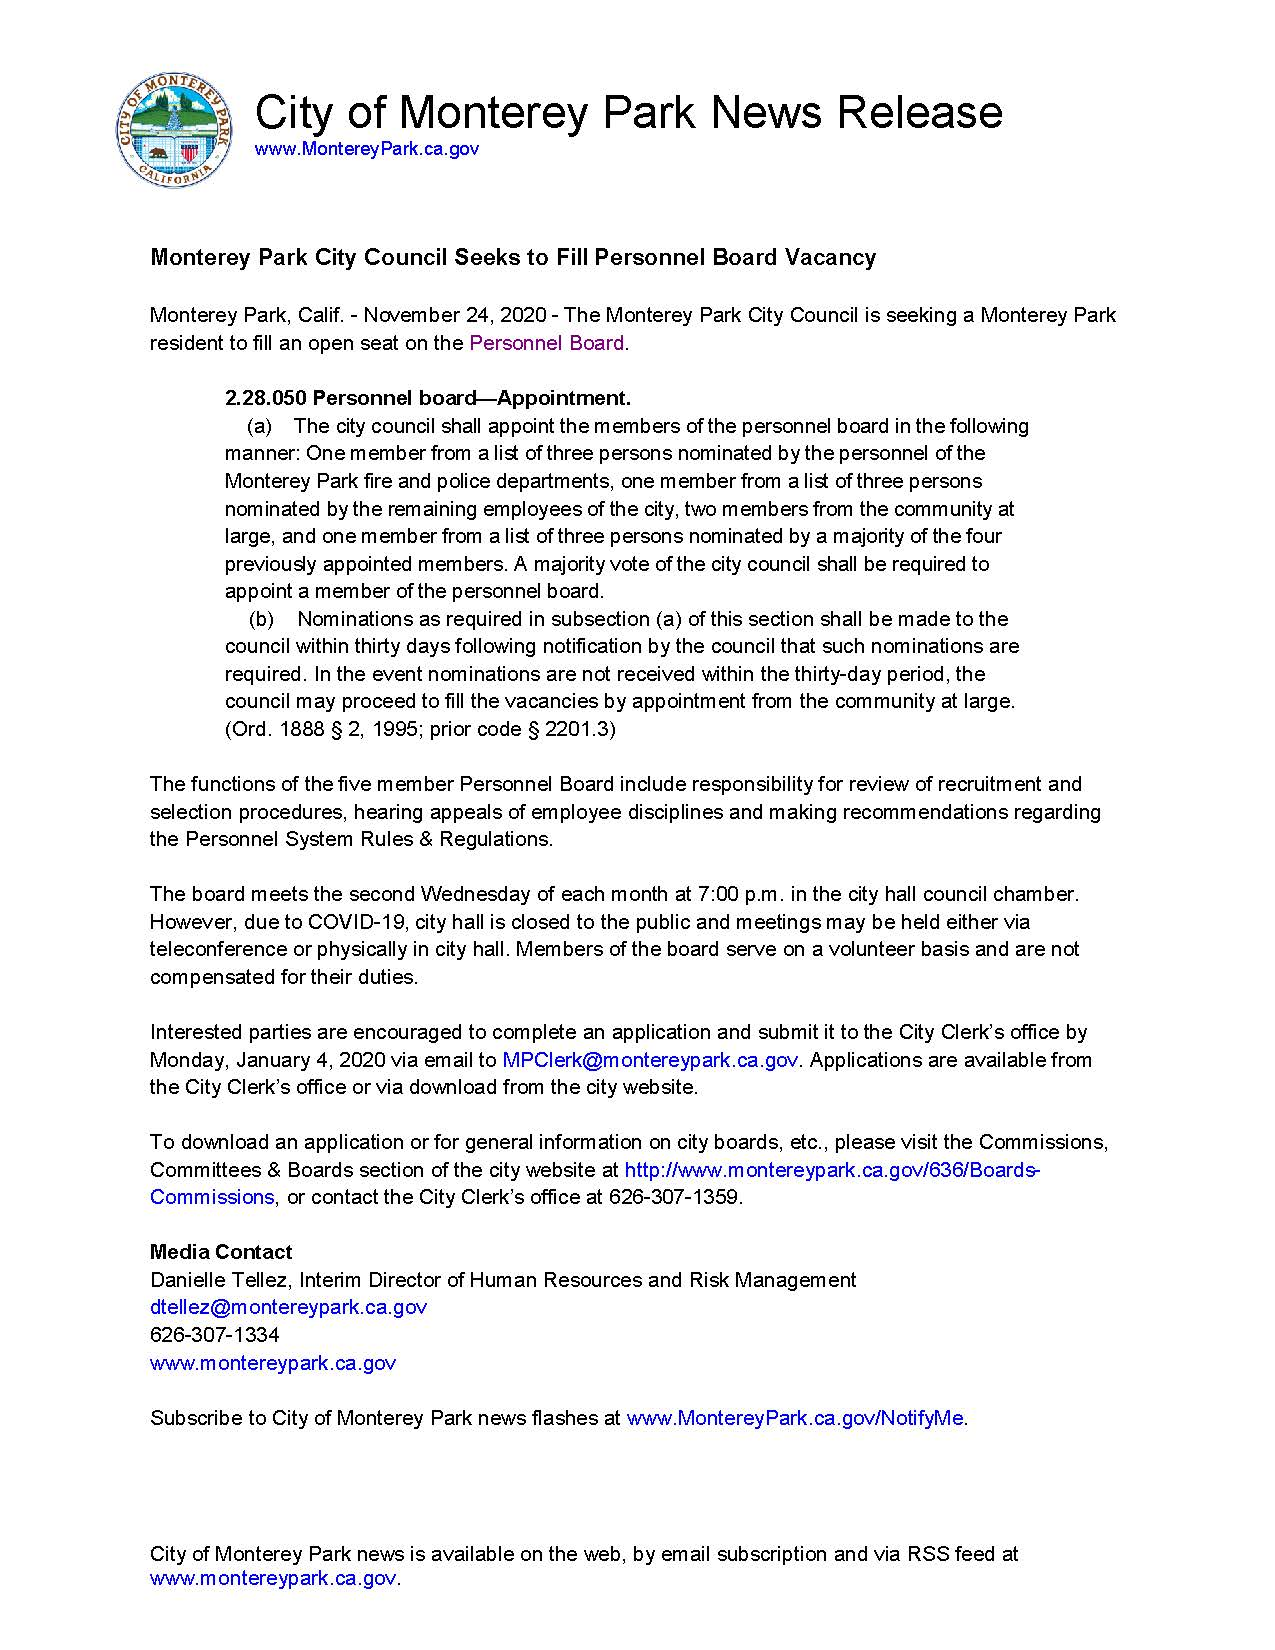 MPK News Release-Monterey Park City Council Seeks to Fill Personnel Board Vacancy 11-24-20